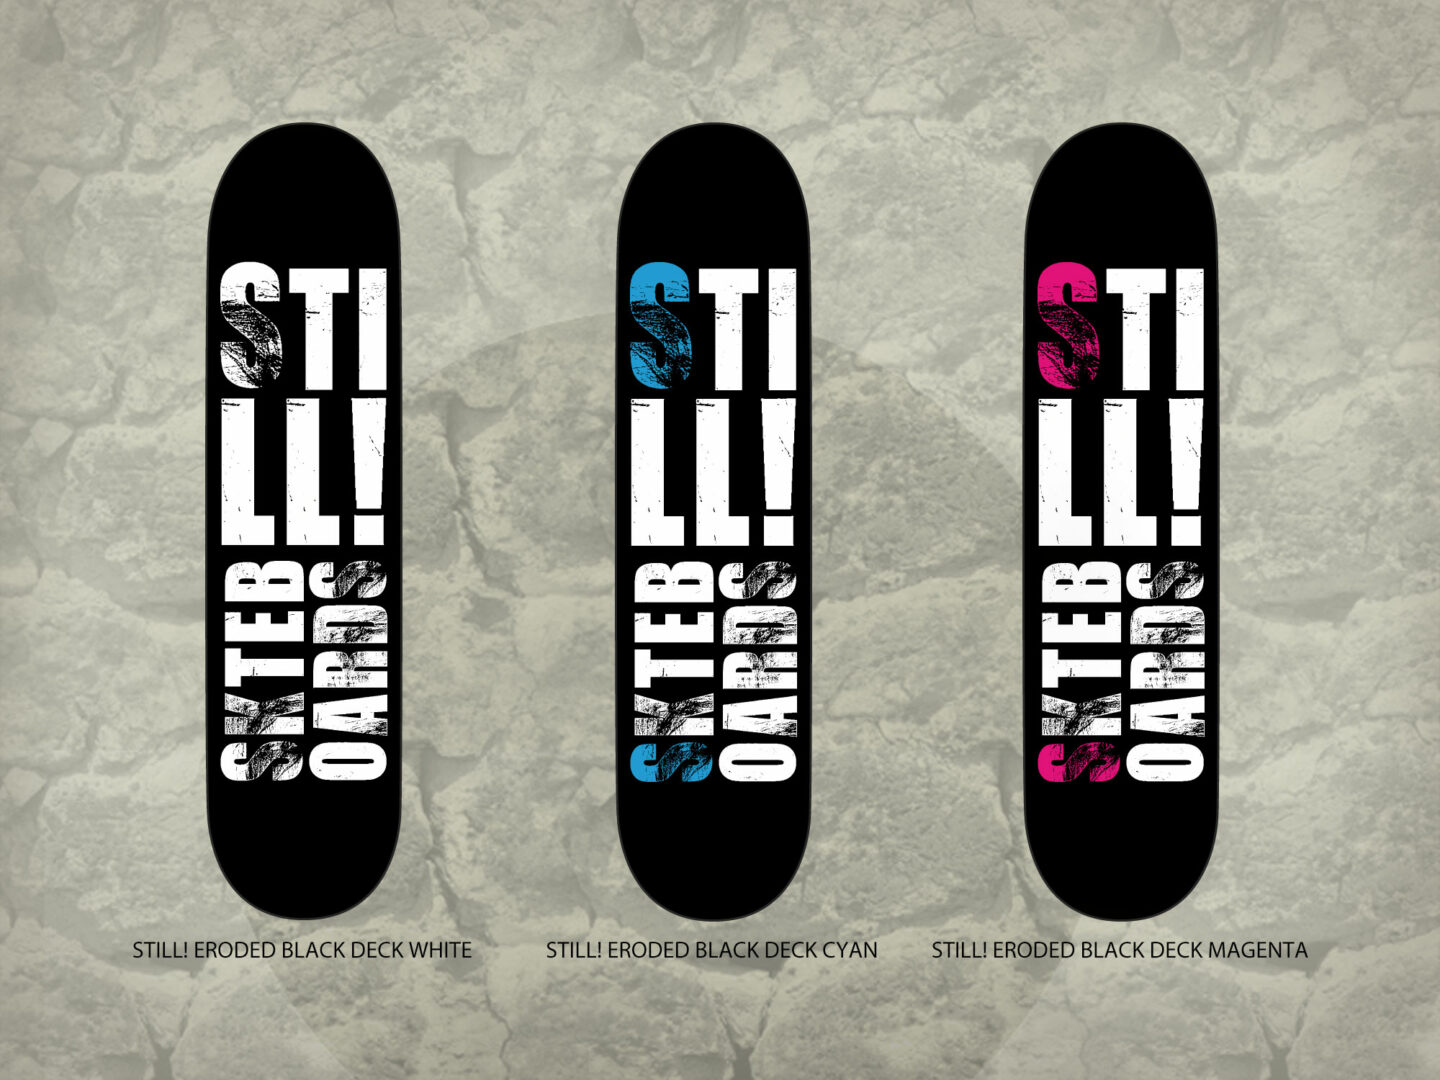 Still! Skateboards Grafica Tavole da Skateboard Serie Still! Eroded Black